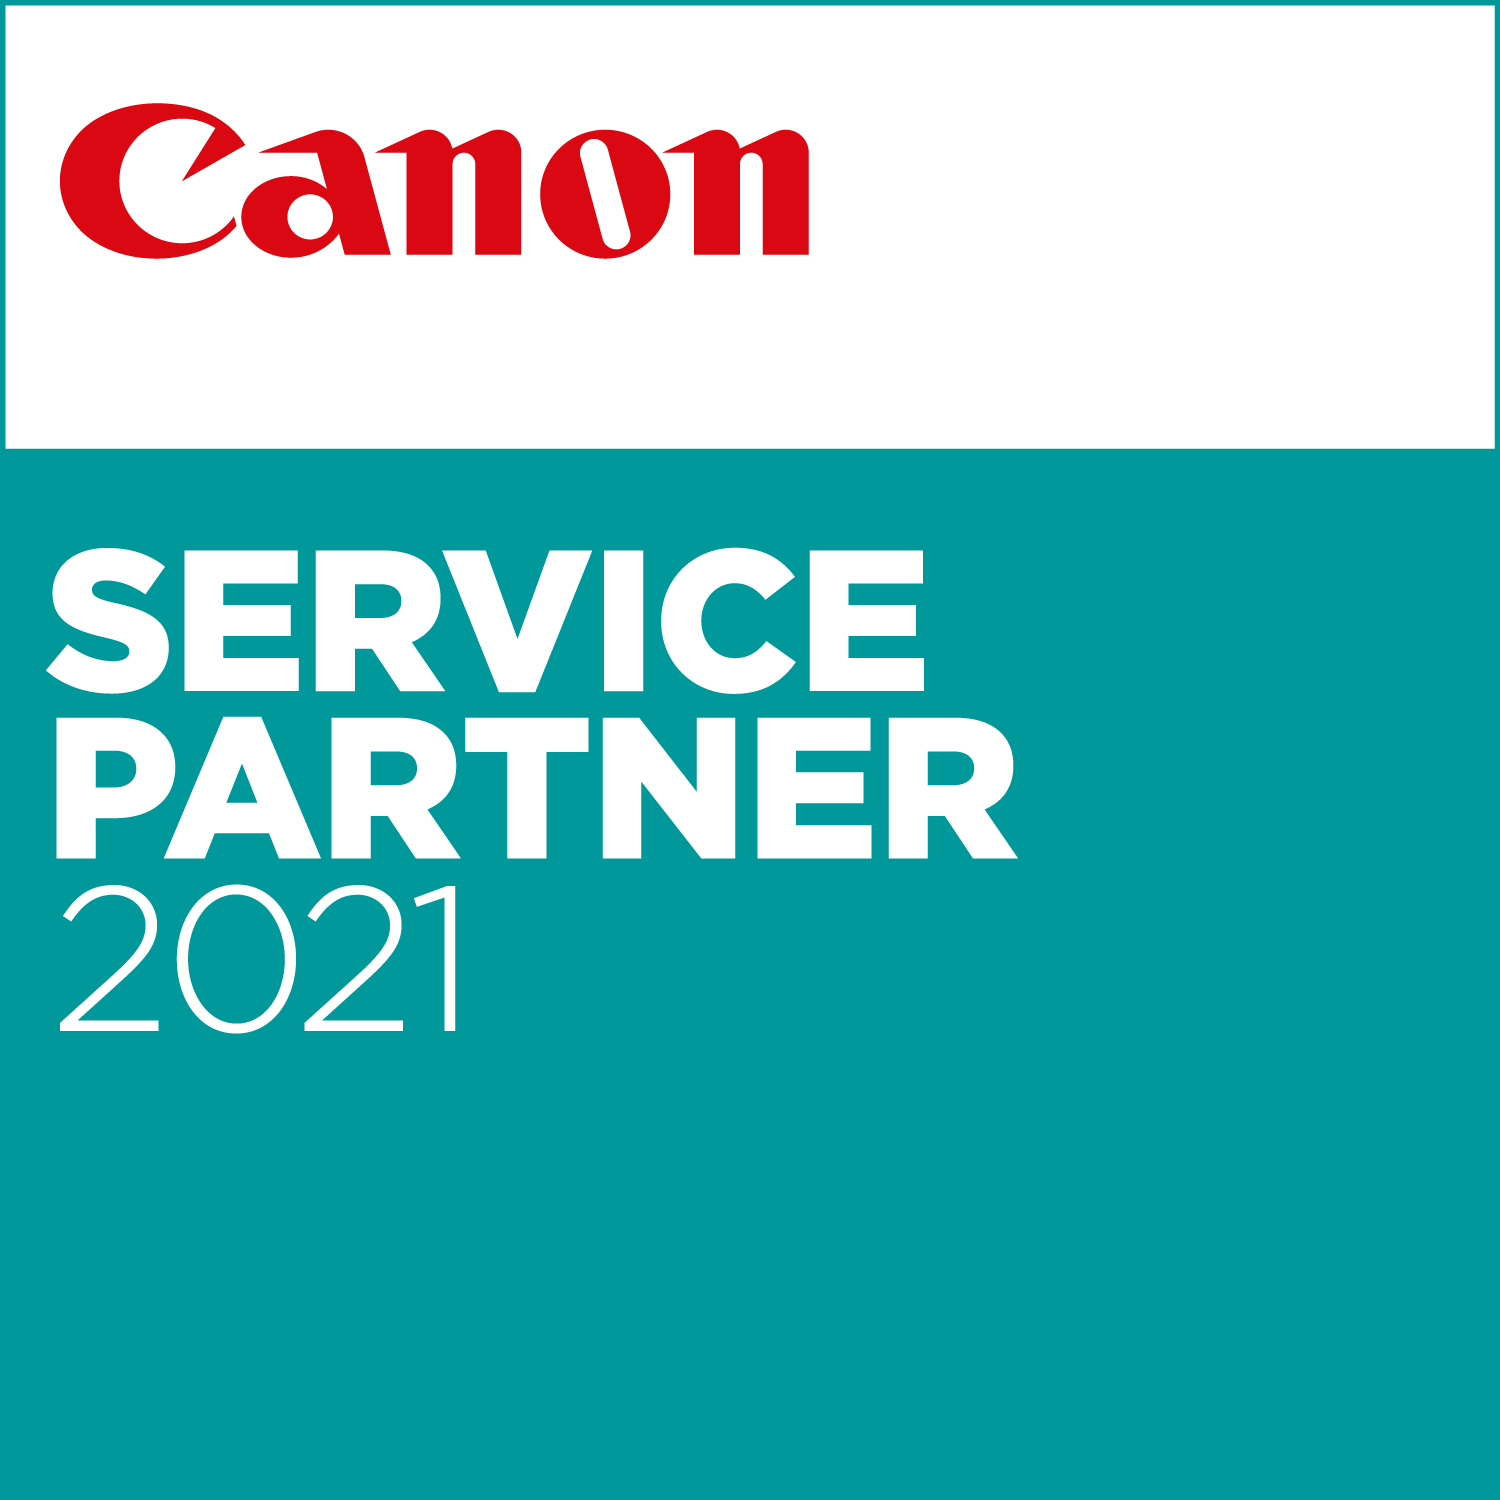 Service Partner Digital Use Only Digital RGB2021